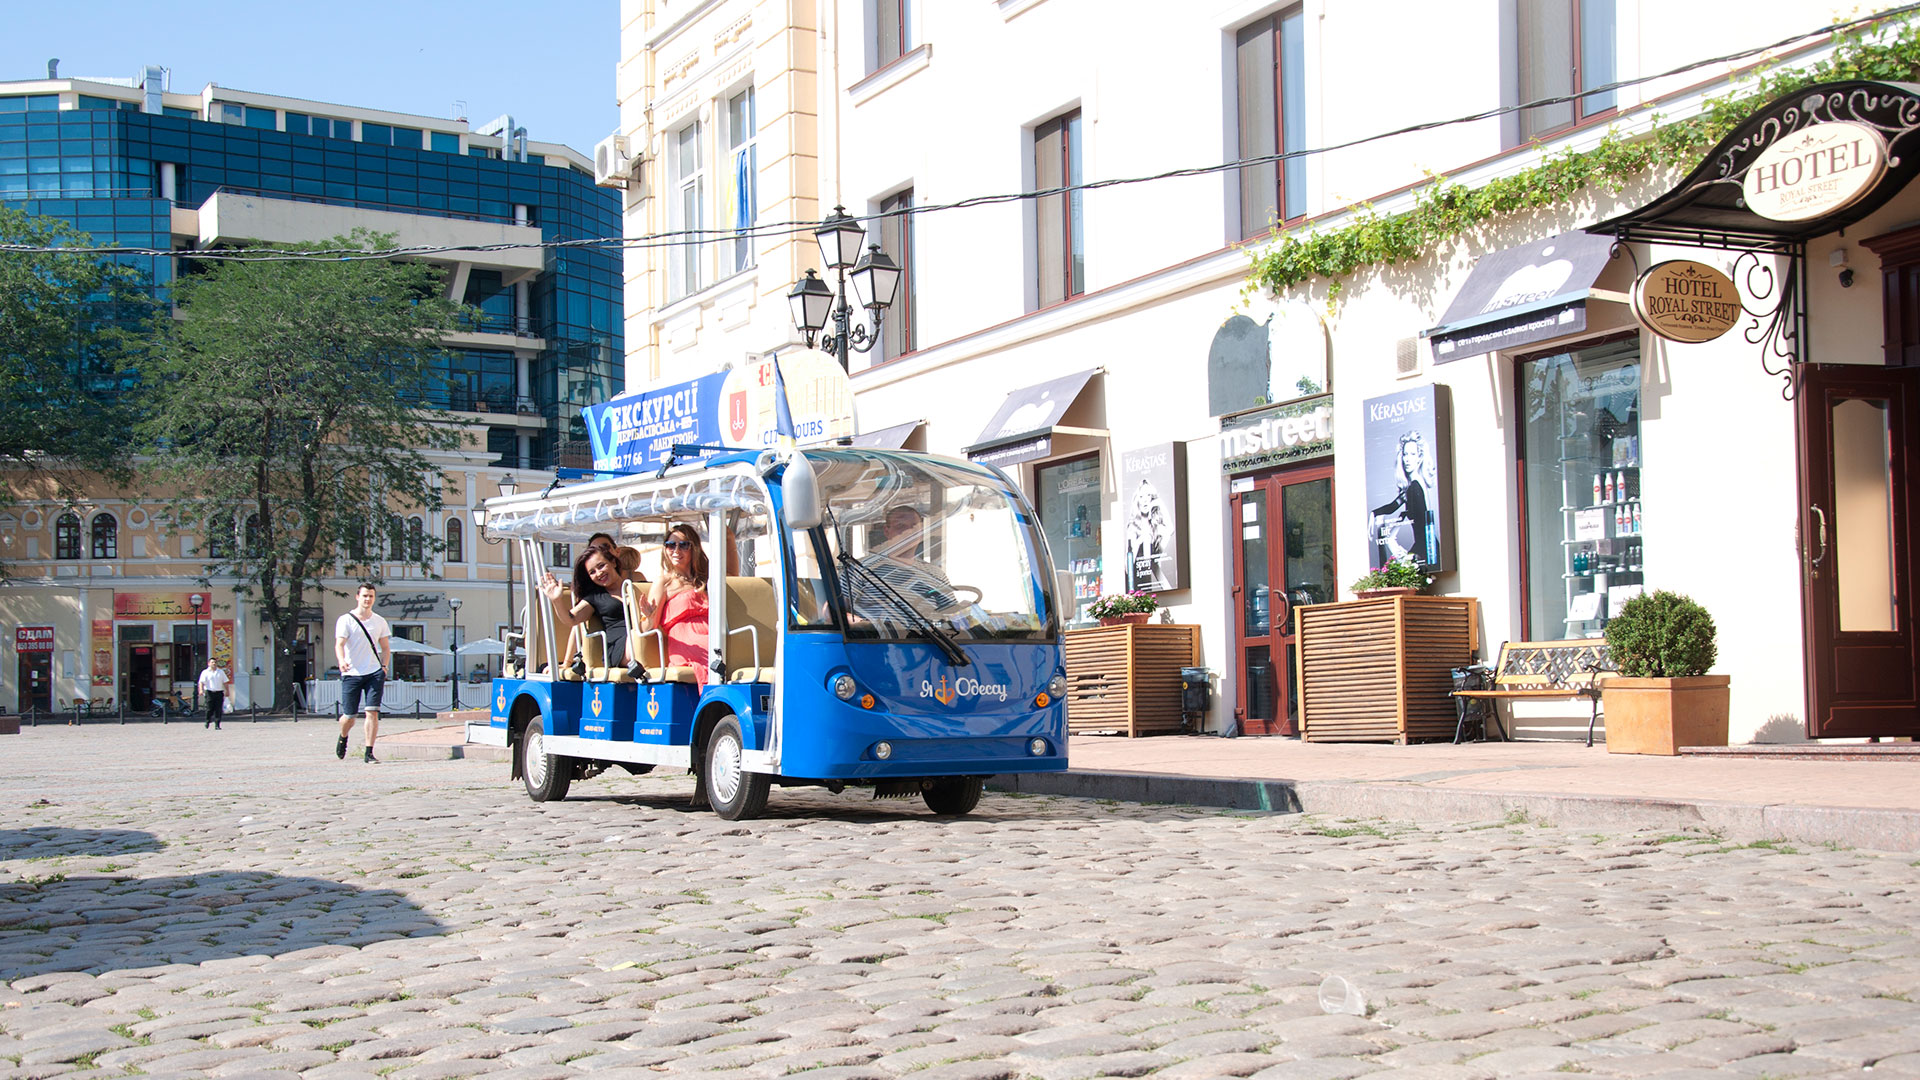 Sightseeing tour of Odessa with a professional guide